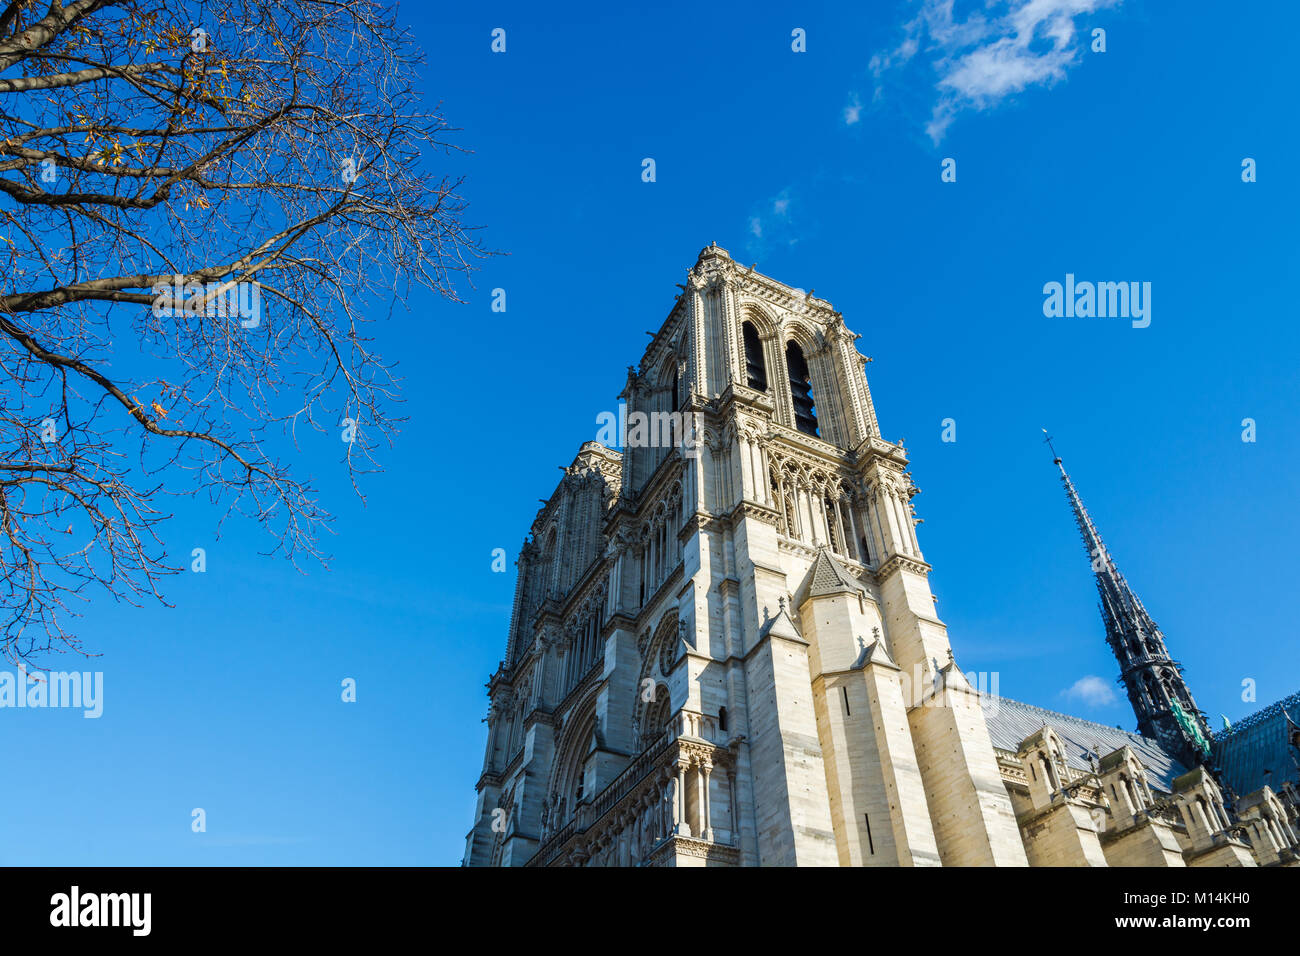 Paris, France: Medieval cathedral Notre Dame de Paris viewd beyound empty tree branches in winter times. - Stock Image